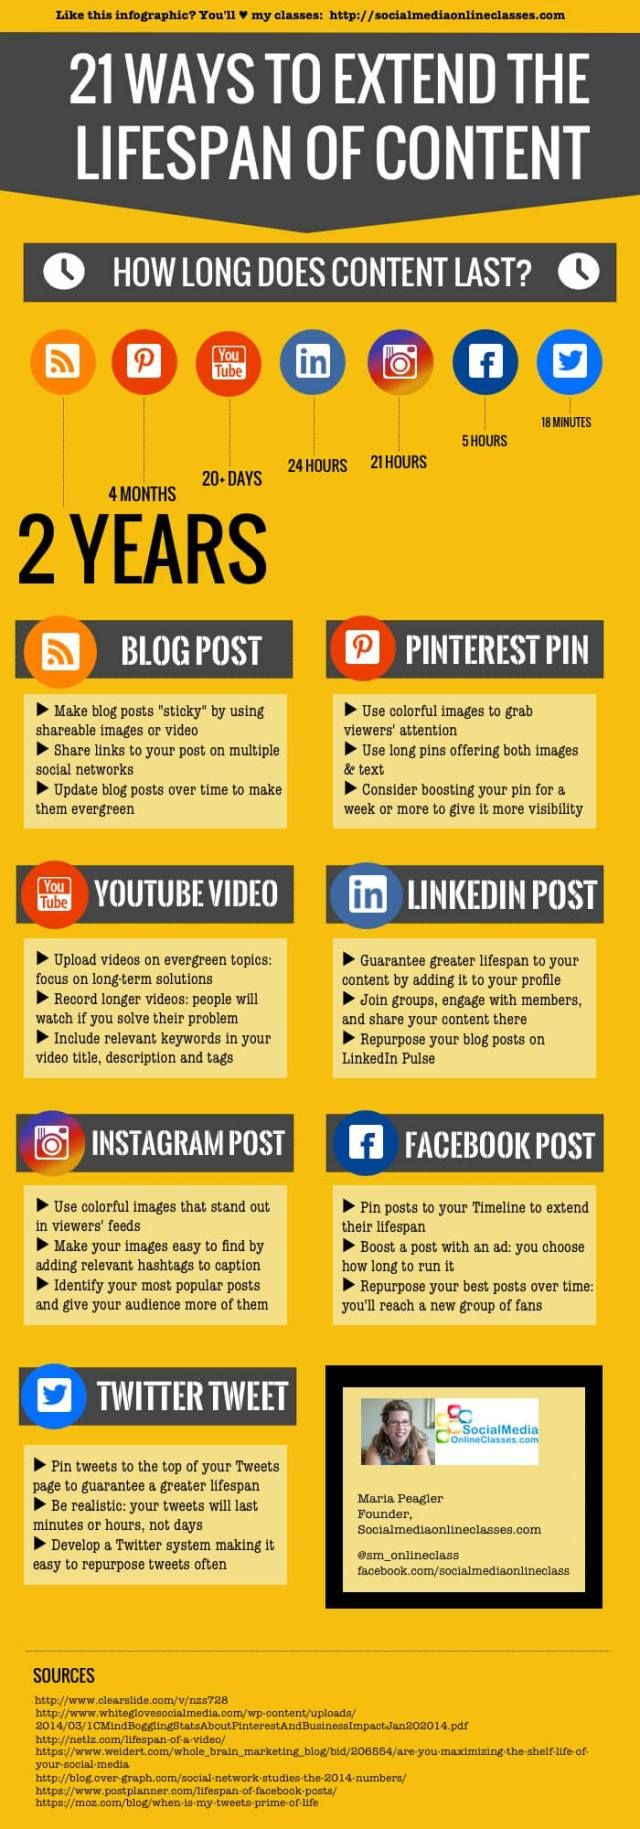 Share on facebook tweet this post pin images to pinterest - Best 25 Posting On Facebook Ideas On Pinterest On The Media Google Platform And Social Media Search